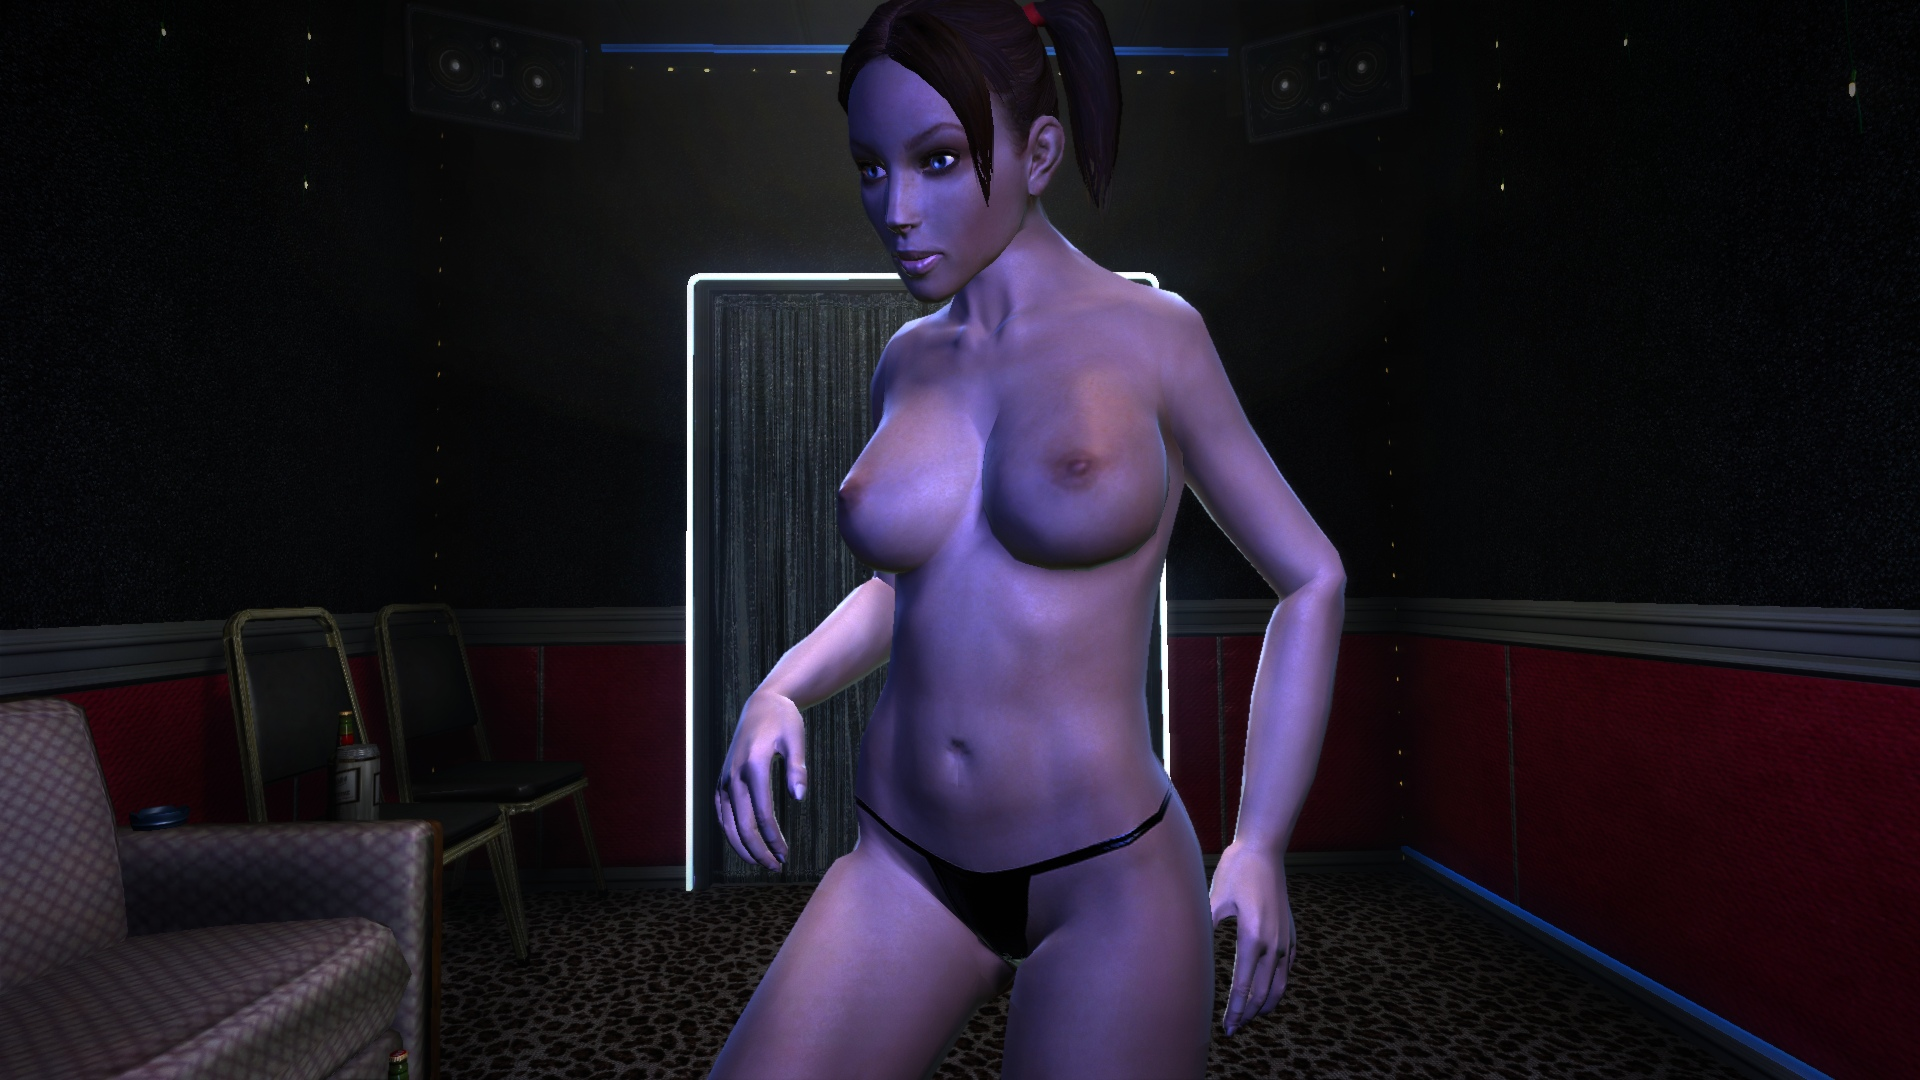 Duke nukem porn vids xxx galleries